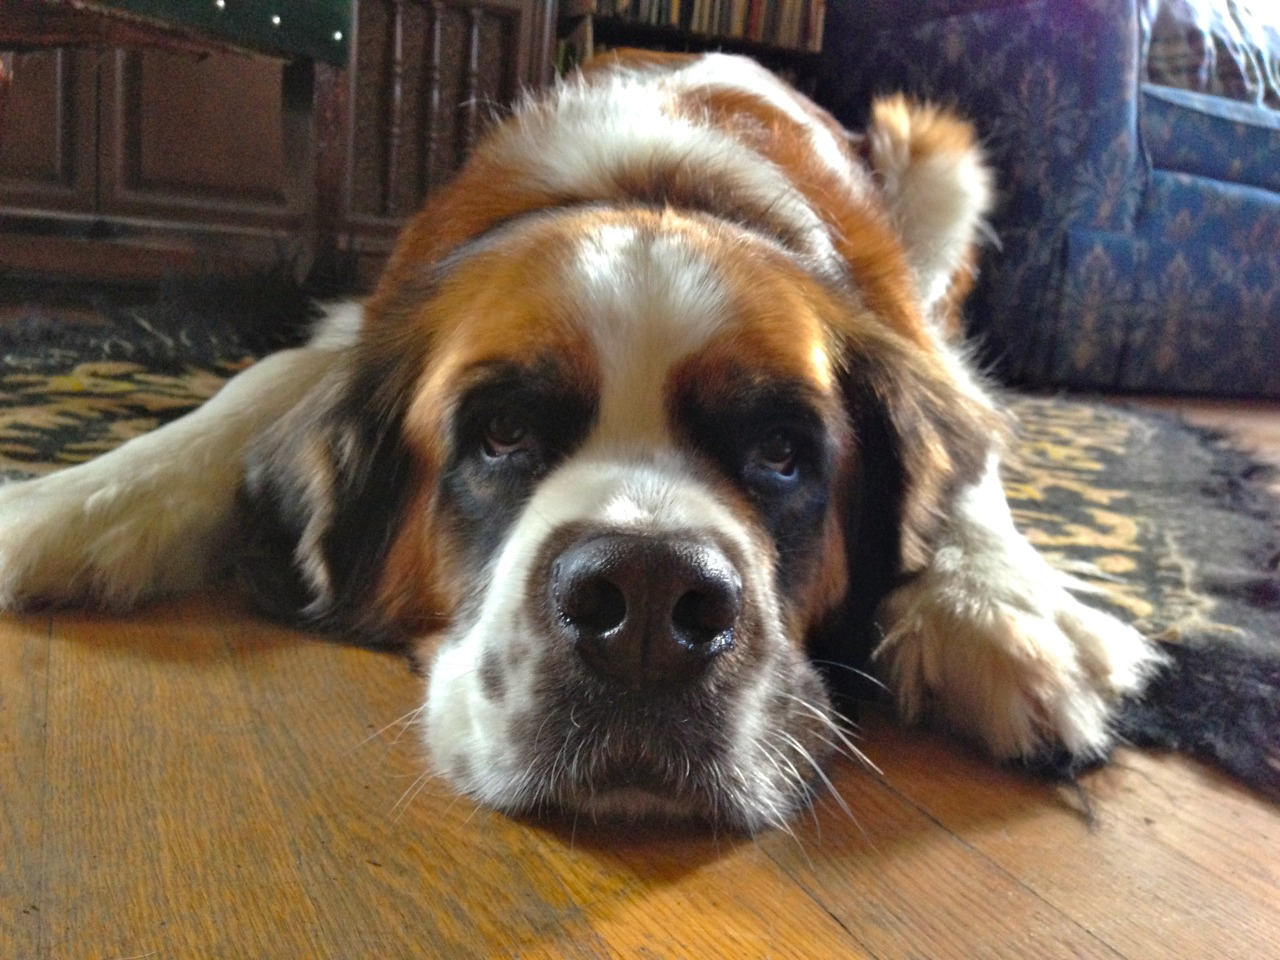 Lola the St. Bernard